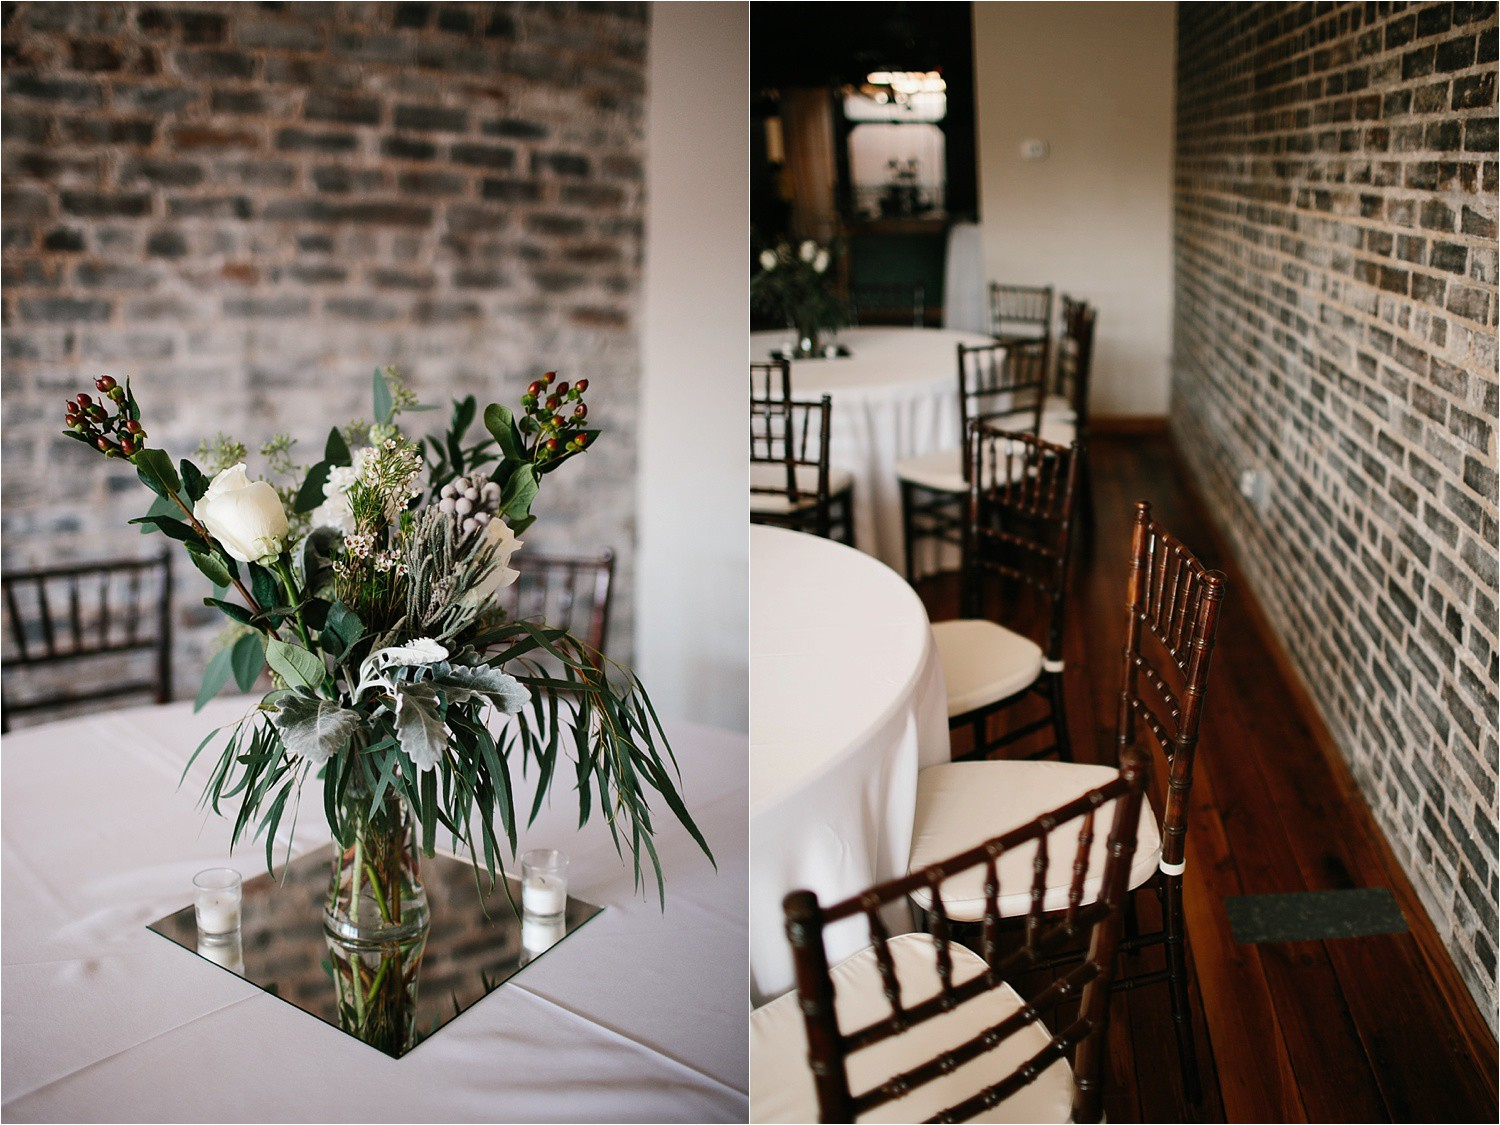 whittney-drew-__-an-intimate-wine-and-navy-wedding-in-an-industrial-venue-at-loft-123-in-paris-tx-by-north-texas-wedding-photographer-rachel-meagan-photography-_-003